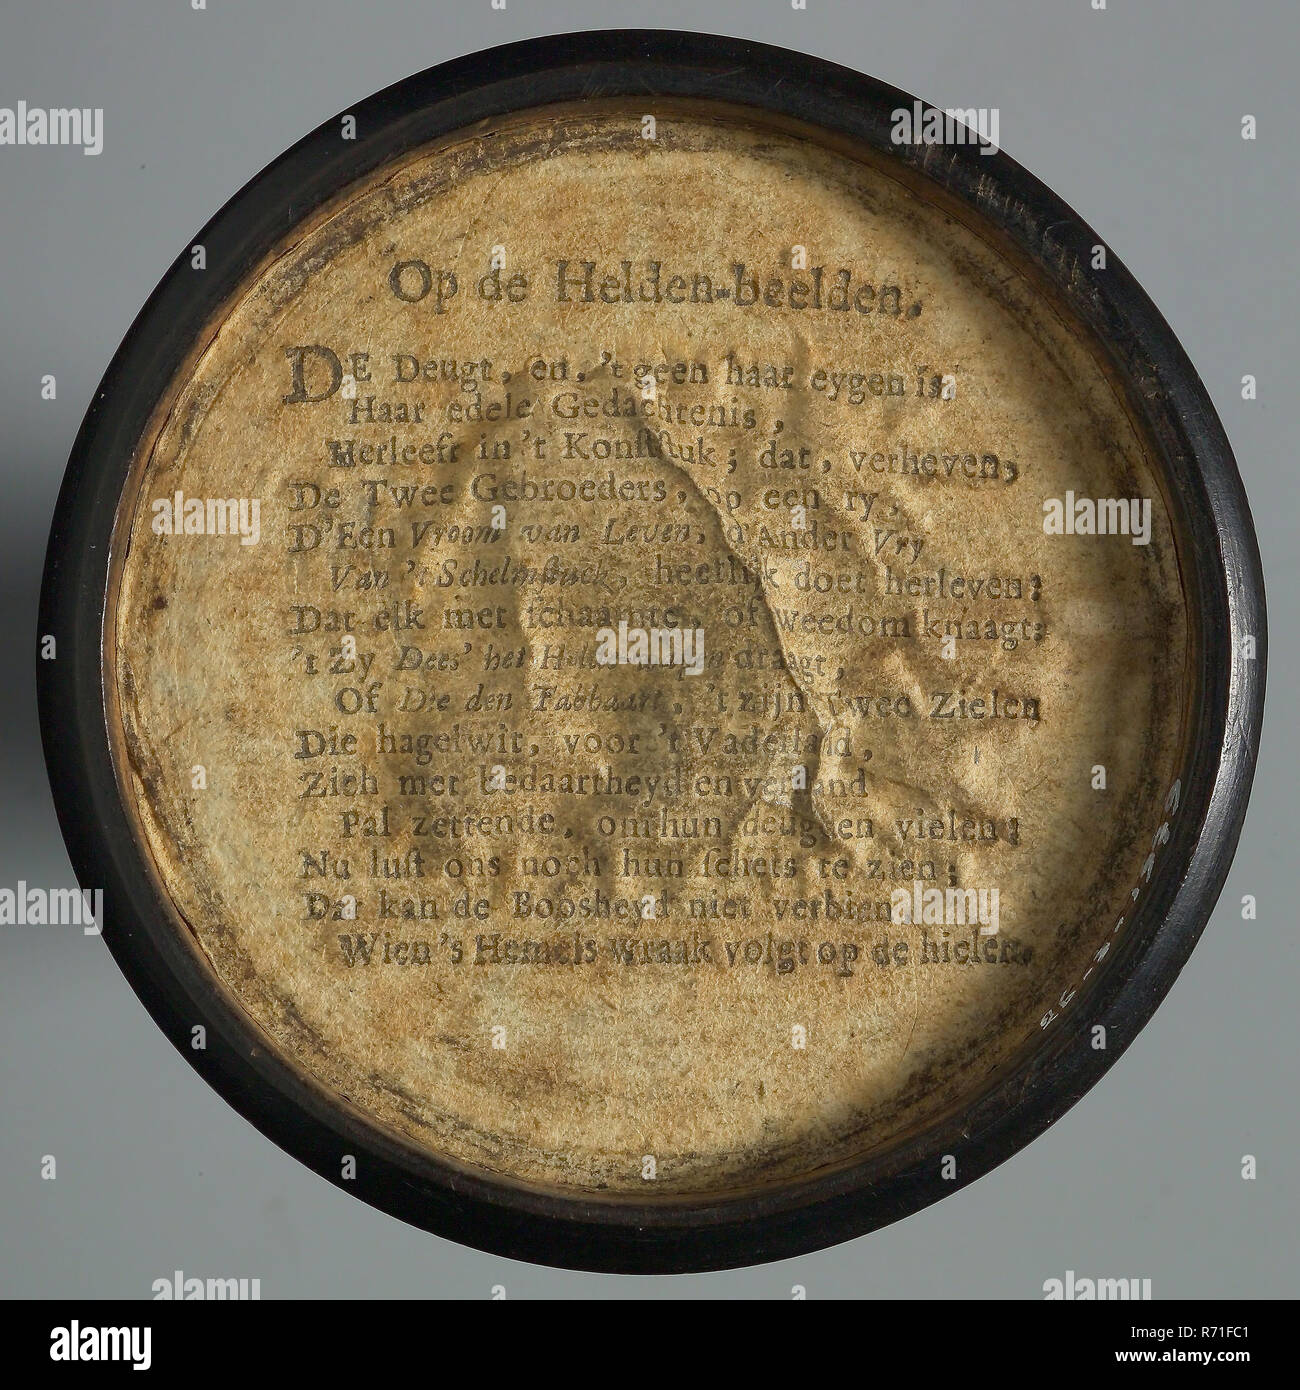 One-sided wooden medallion, covered with paper, with printed text OP DE HELDEN-BEELDEN , penny box holder of wood paper, Text, ON THE HERO-IMAGES THE DEUGT AND 'NO NONE OF ITS EYGEN IS HER EDELE THOUGHT; RELAXING IN THE KING; THAT THE TWO BROTHERS ON RY D HAS RAPIDLY RAPTLED FATH OF LIFE D 'OTHER VRY VAN' T SCHELMSTUCK; THAT EVERYTHING WITH SHEEP OR WEEDOM COMES 'T ZY DEES' WEARS THE HEART-WEAPON OR THAT TABLETS ITS TWO SOULS WHICH SHALL TAKE HAIL WHITE FOR THE FATHER'S COUNTRY WITH FAMILY AND REALIZING THEIR VIRTUES; NOW DOES NOT LIKE TO SEE THEIR SKETCH; THAT CAN NOT VOID THE BOOSHEYD WHEN H - Stock Image